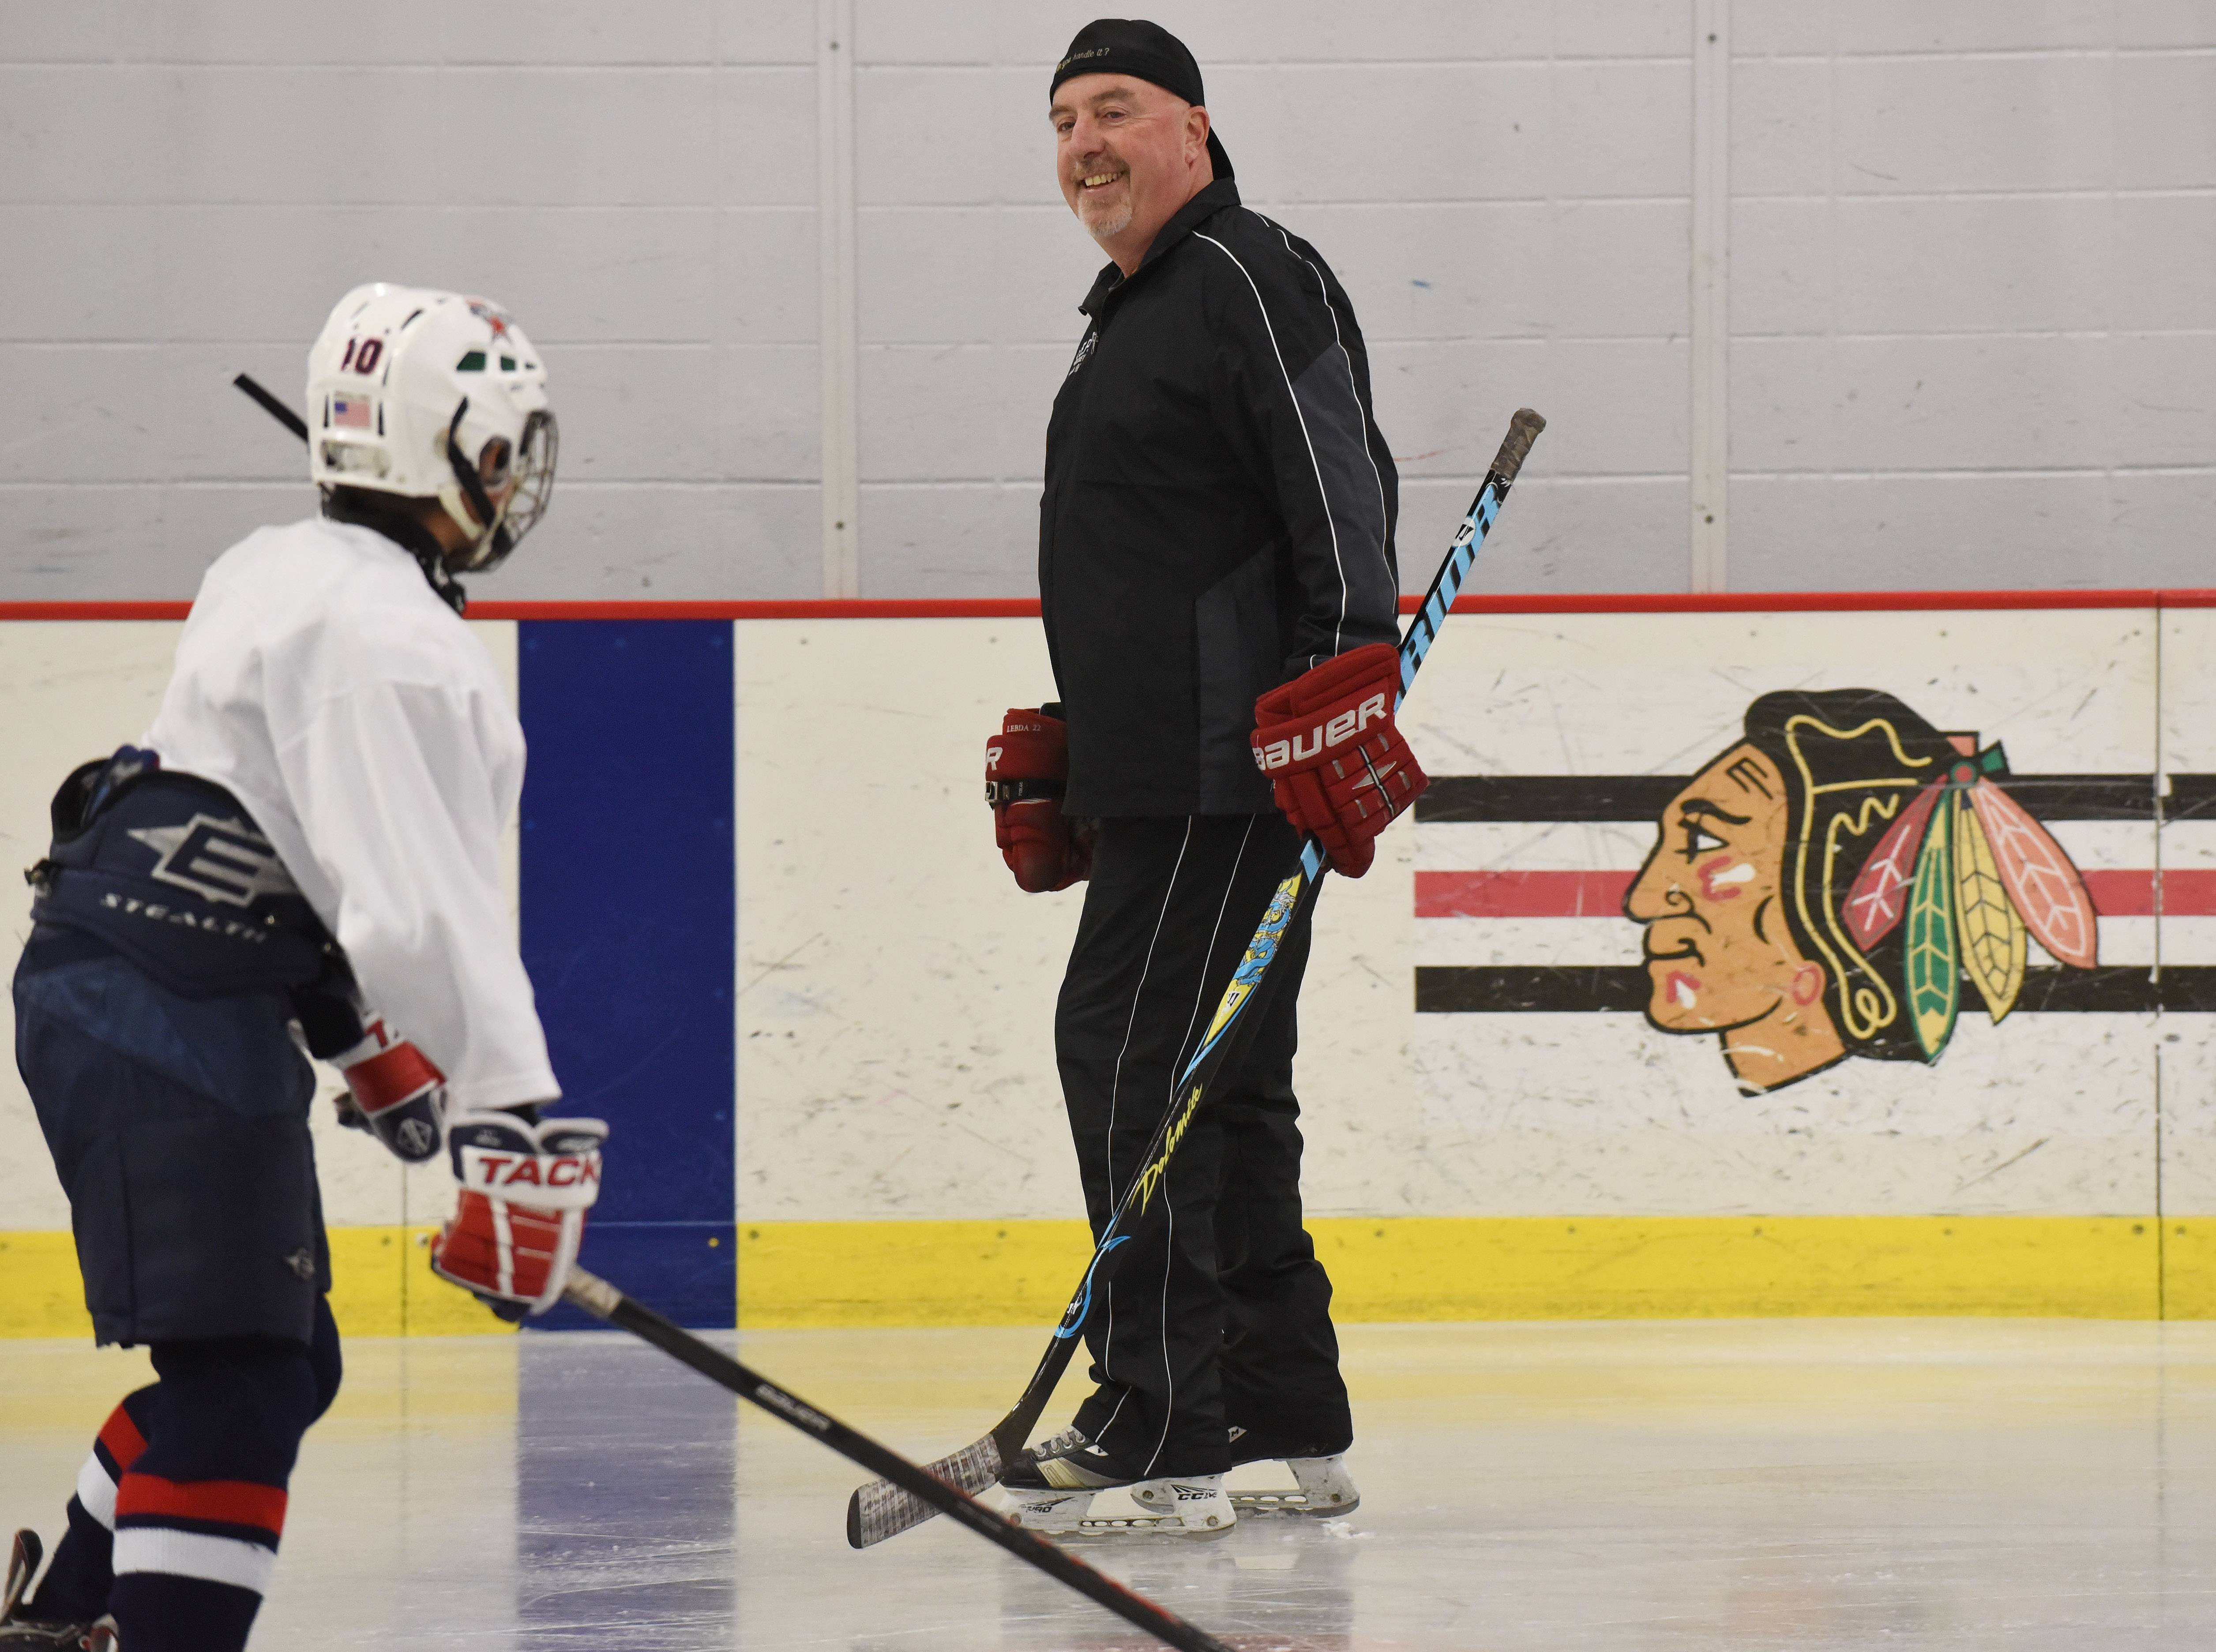 AT DAILYHERALD.COM/MORE: Longtime youth hockey coach Sylvain Turcotte of Buffalo Grove talks about why it's best for parents to address any questions kids might have about the Patrick Kane investigation.